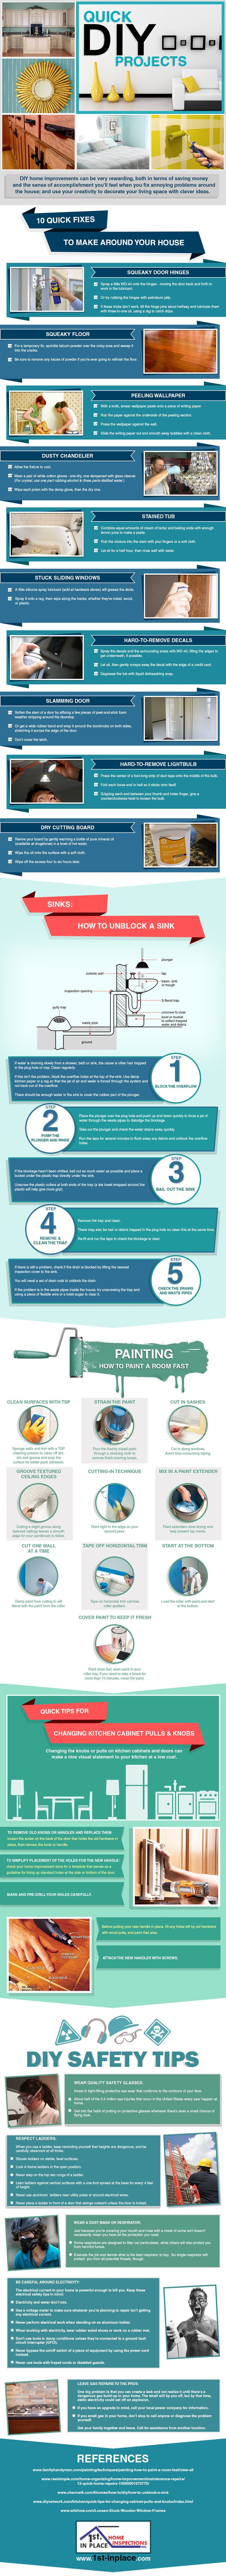 Easy home projects that add value